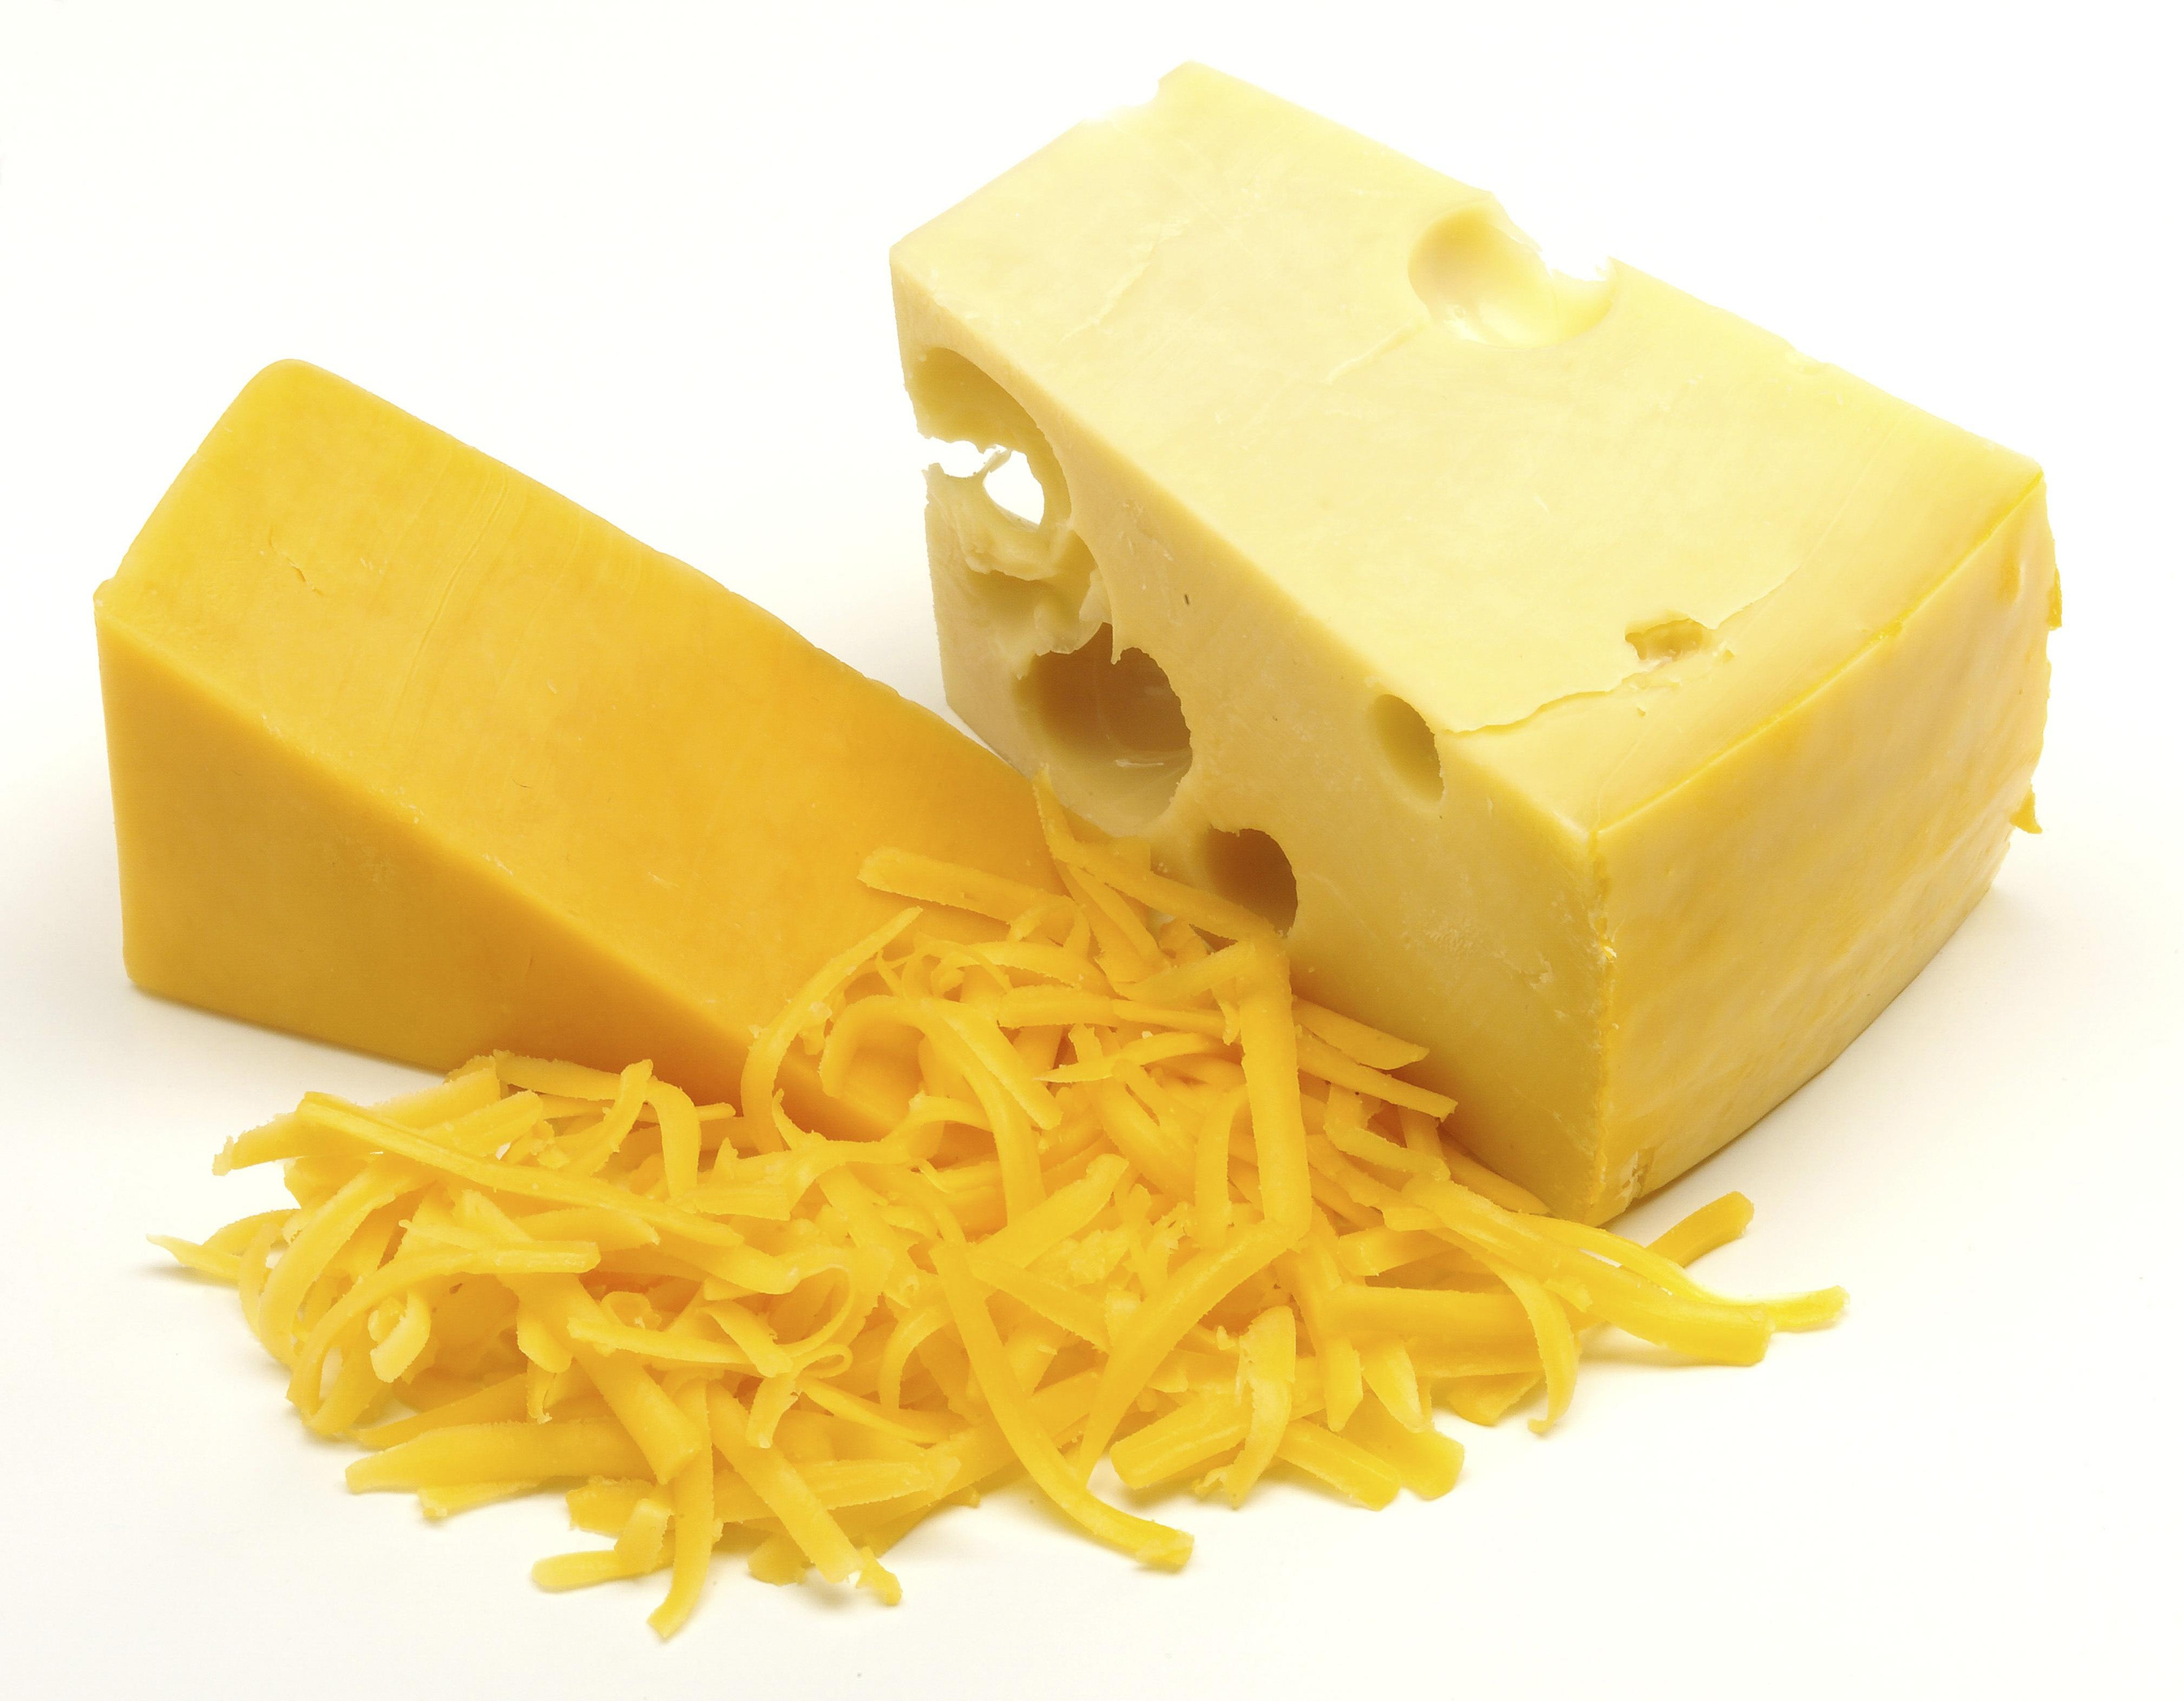 Cheese clipart cheddar. Shred group shredded